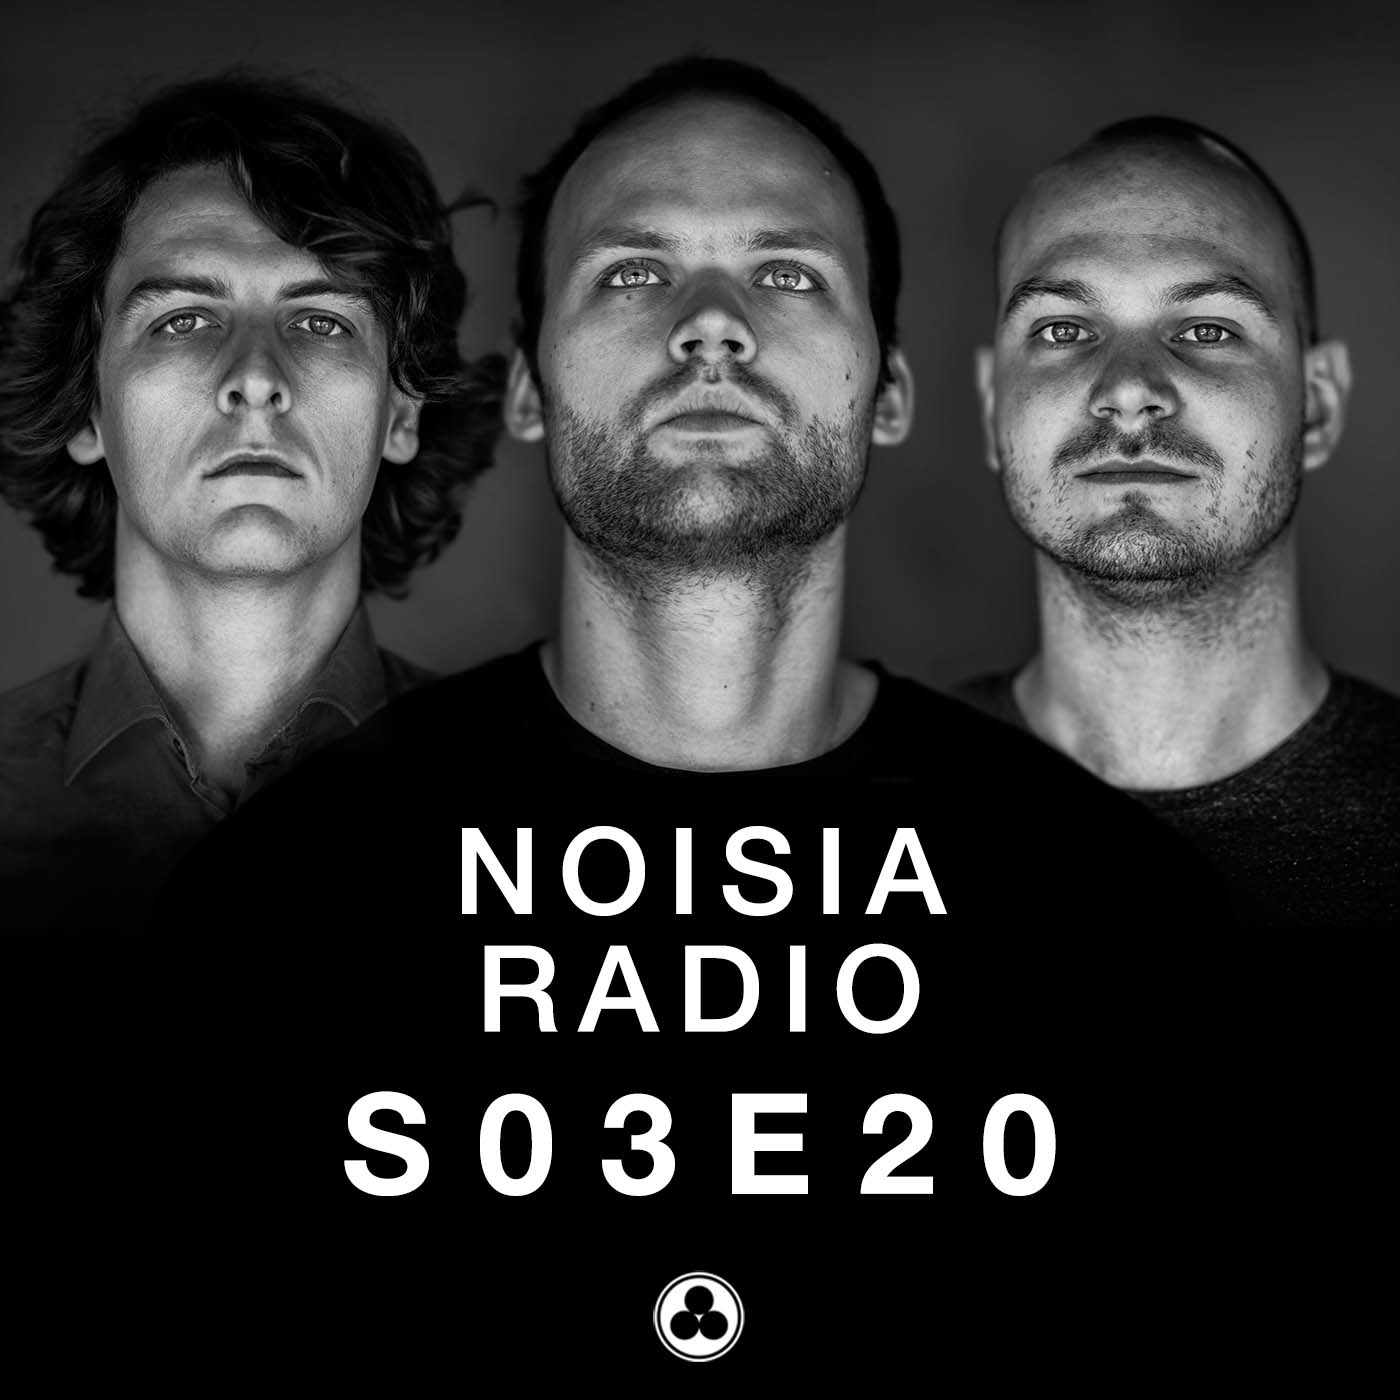 Noisia Radio S03E20